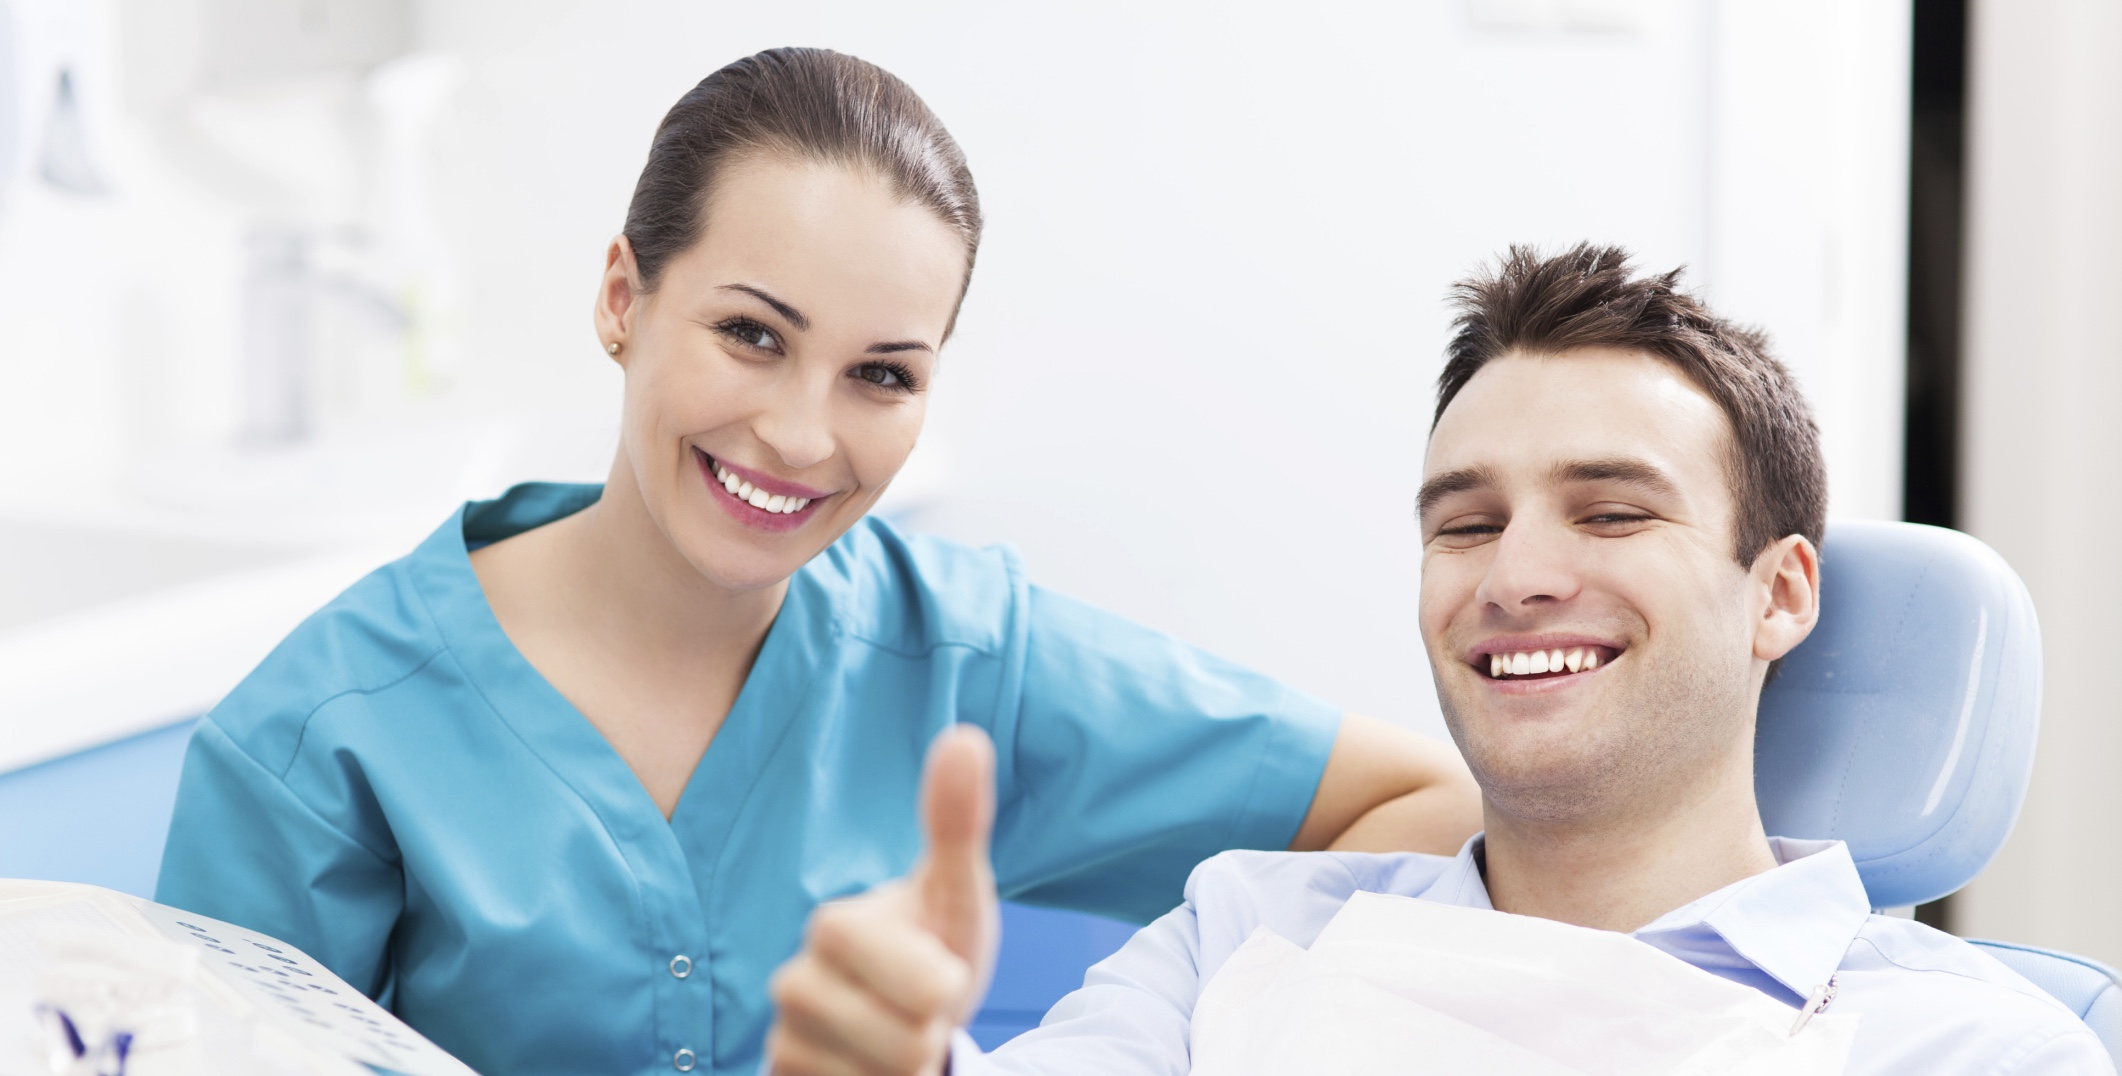 Town Center Dentistry in San Diego offers top of the line sedation dentistry at our rancho bernardo offices.